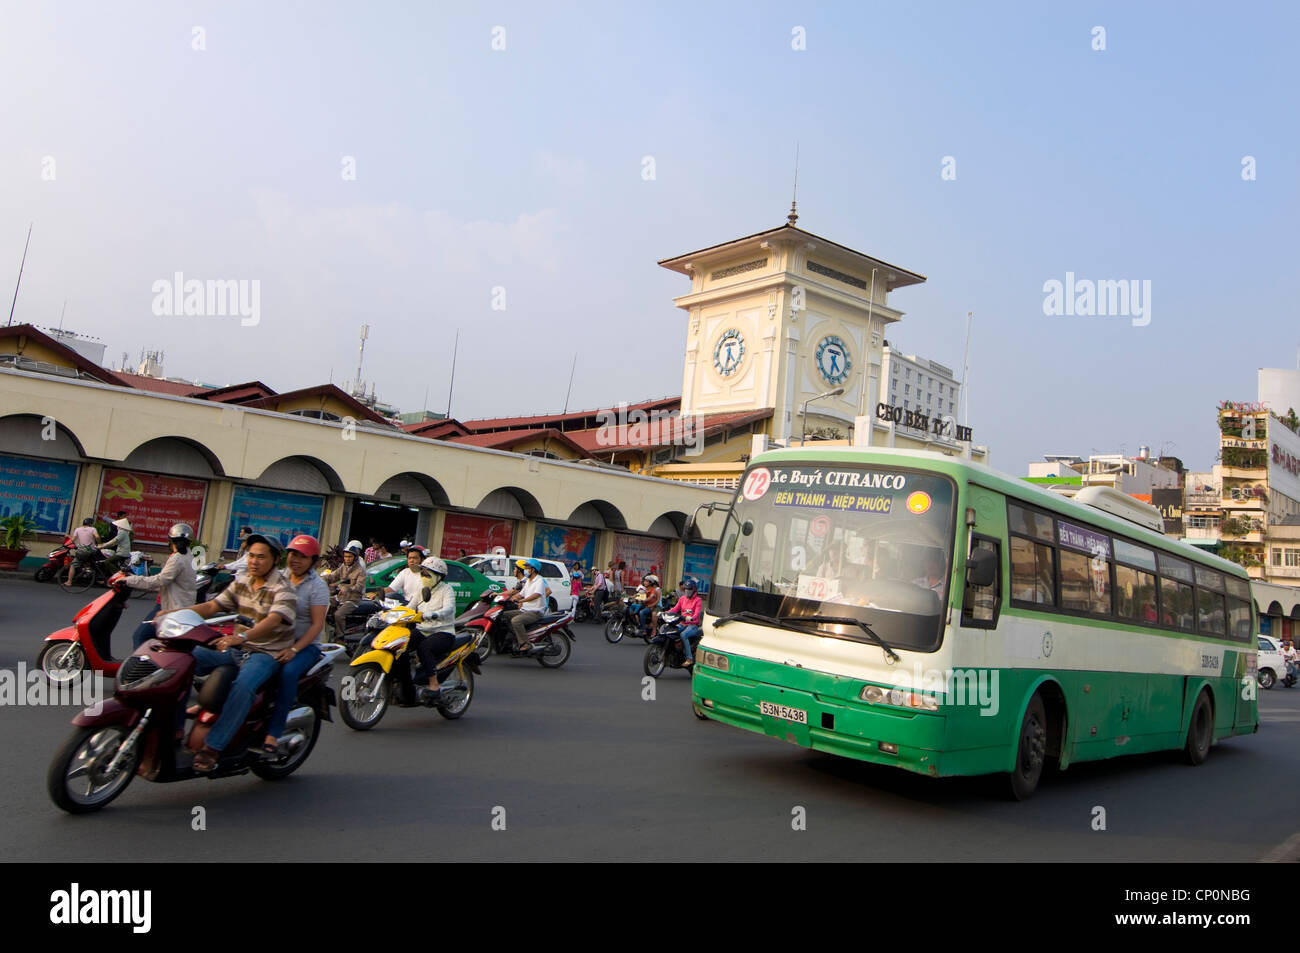 Covered Public Bus Transport Hub Stock Photos & Covered Public Bus